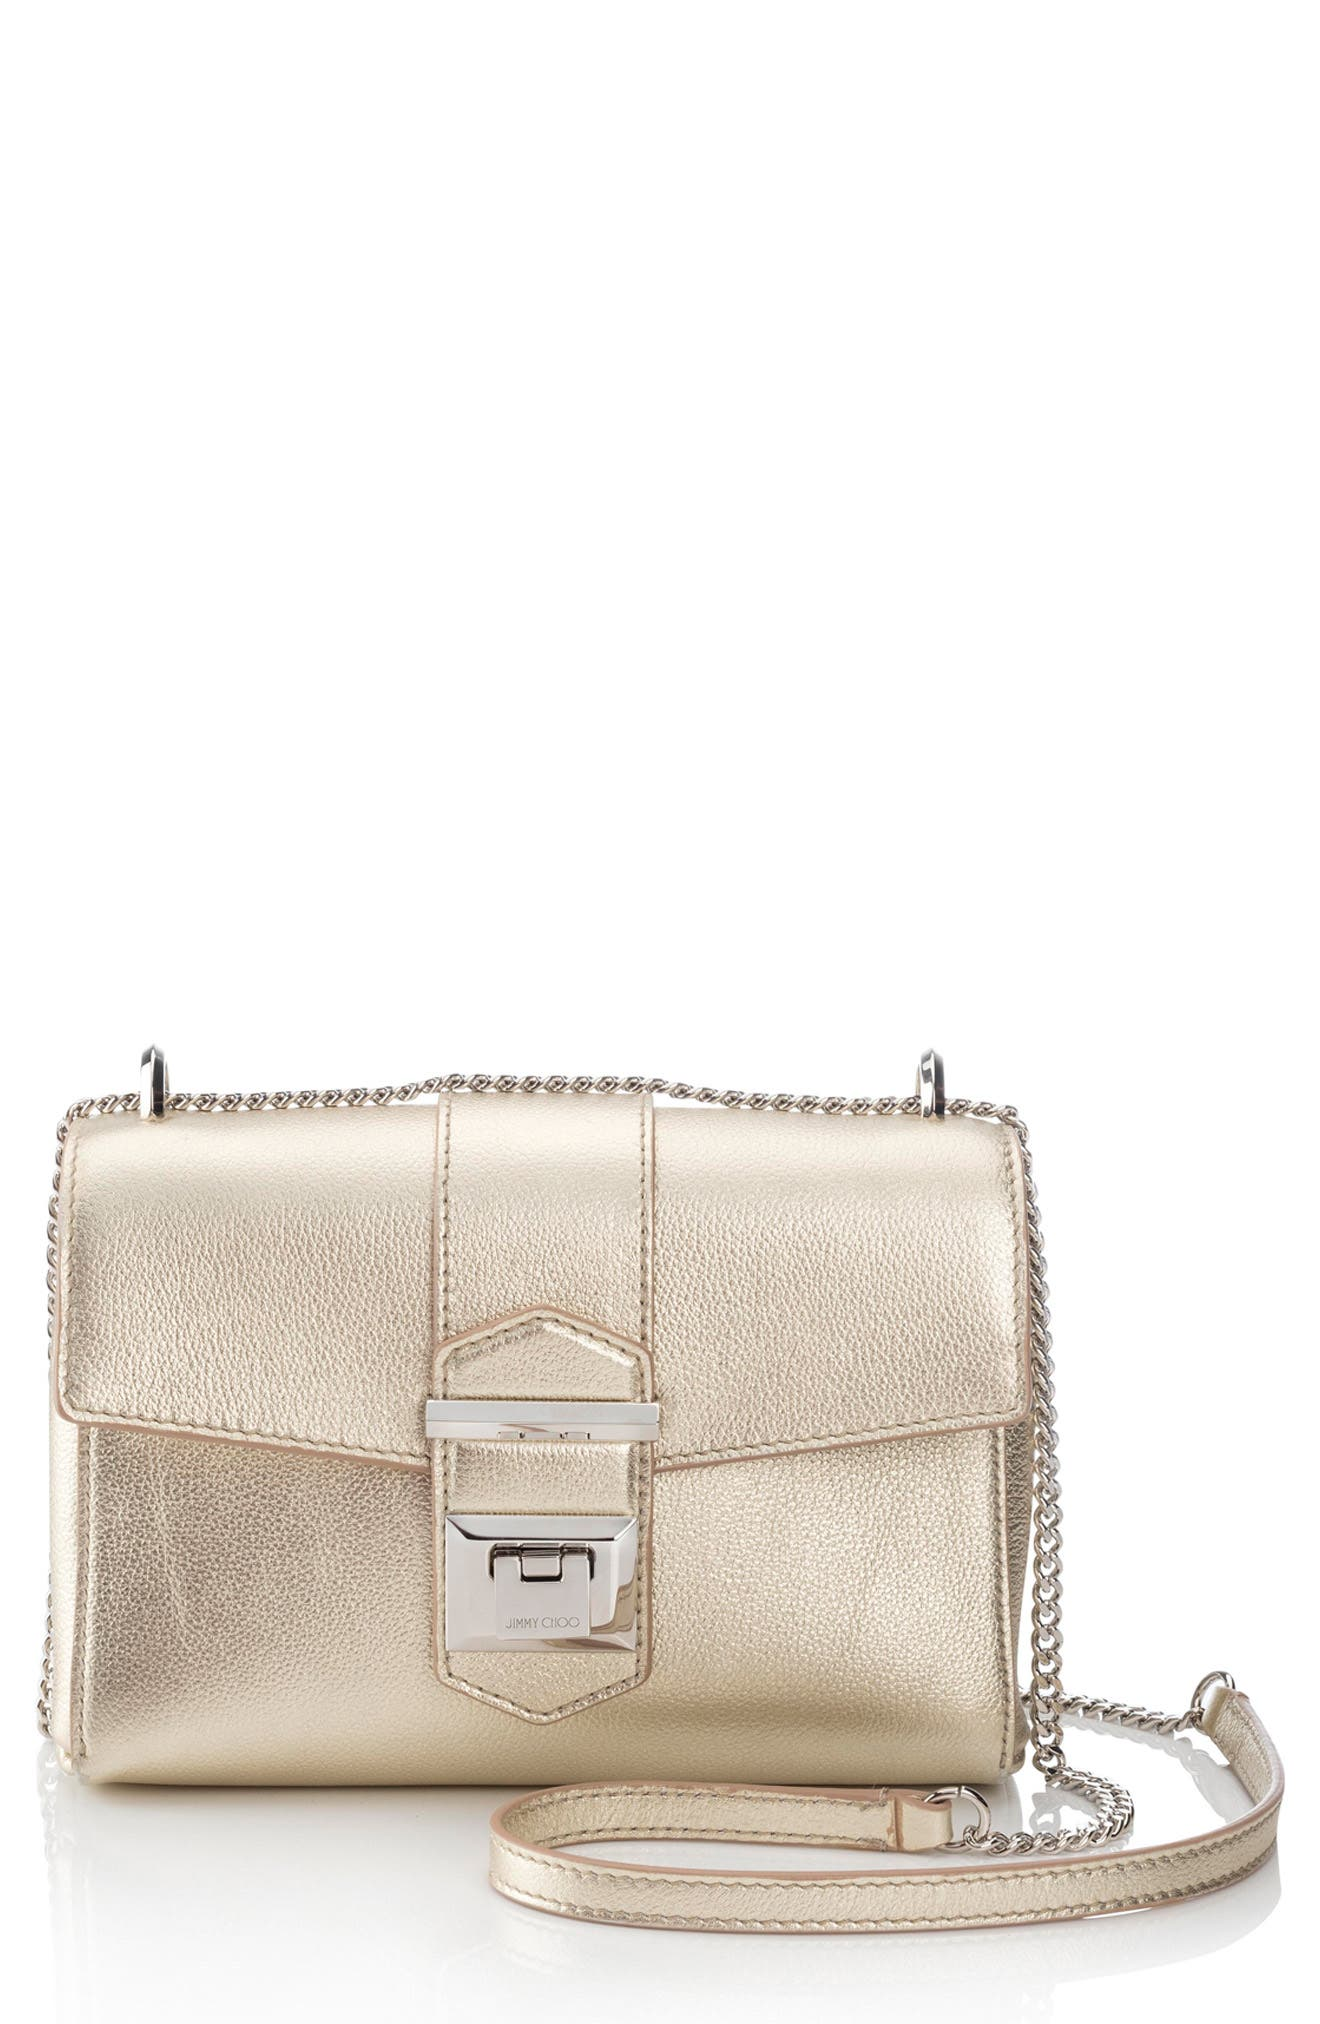 Marianne Metallic Leather Crossbody Bag,                         Main,                         color, GOLD